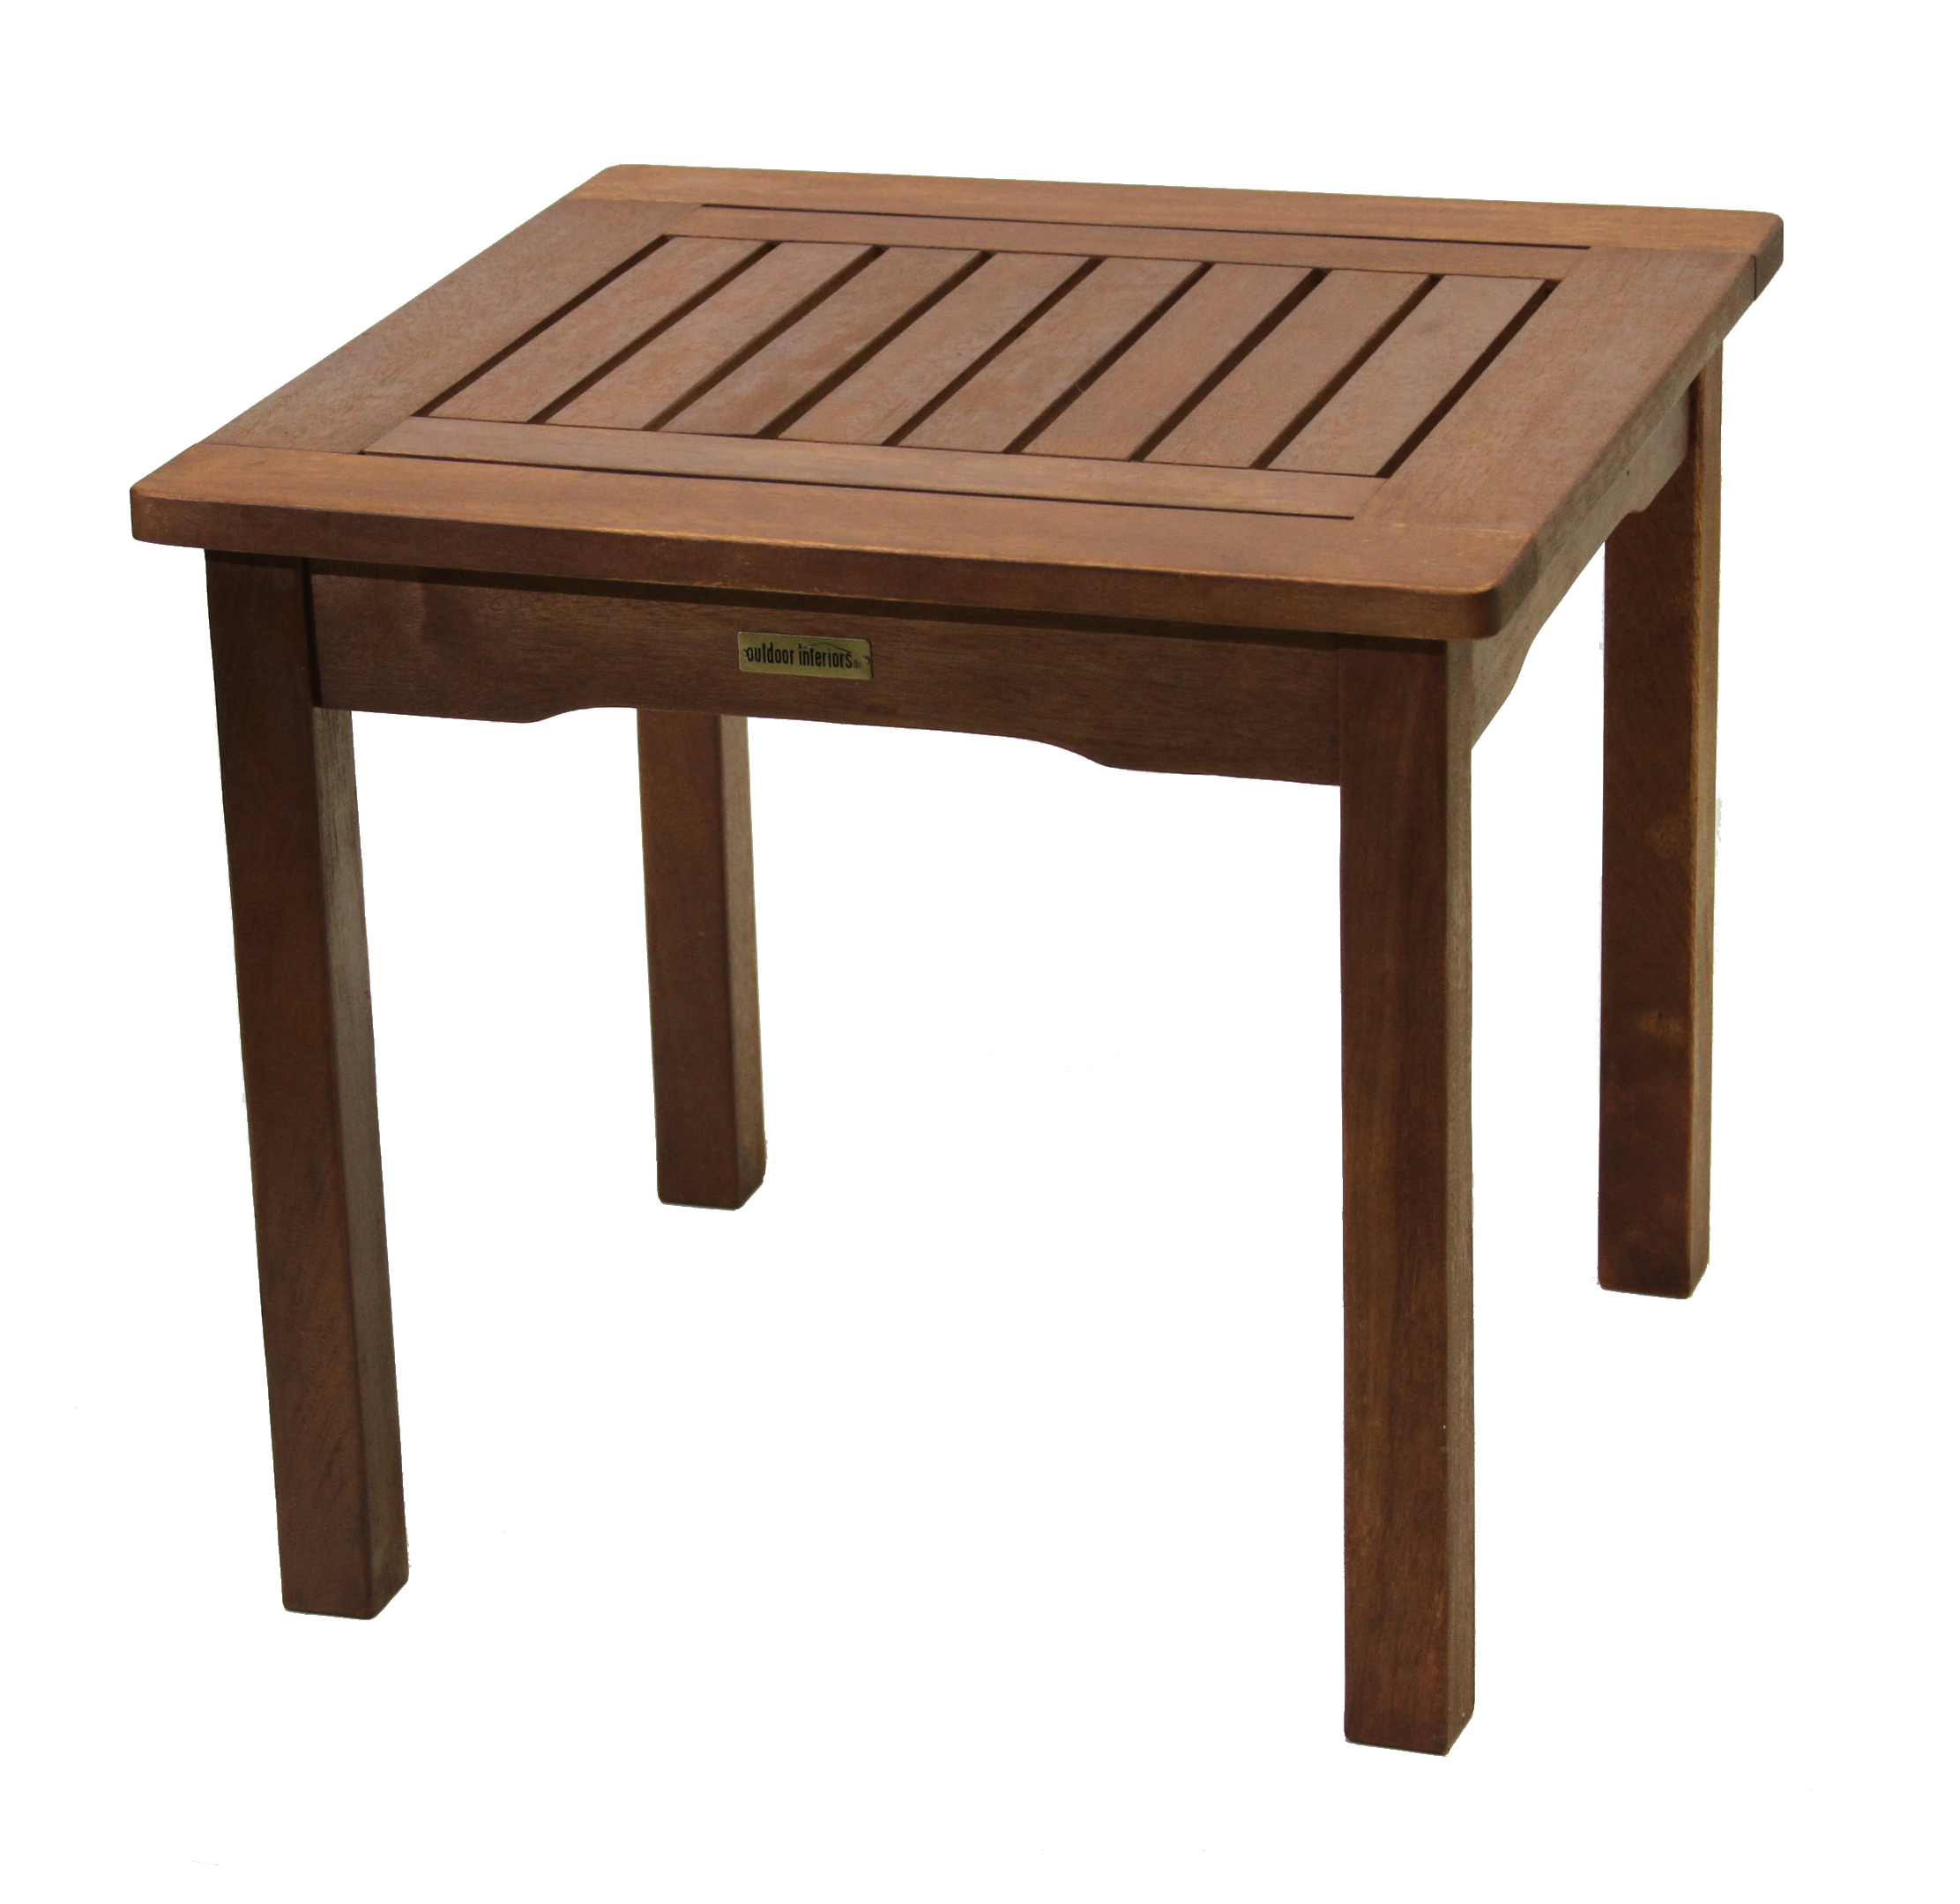 small outdoors tables  14